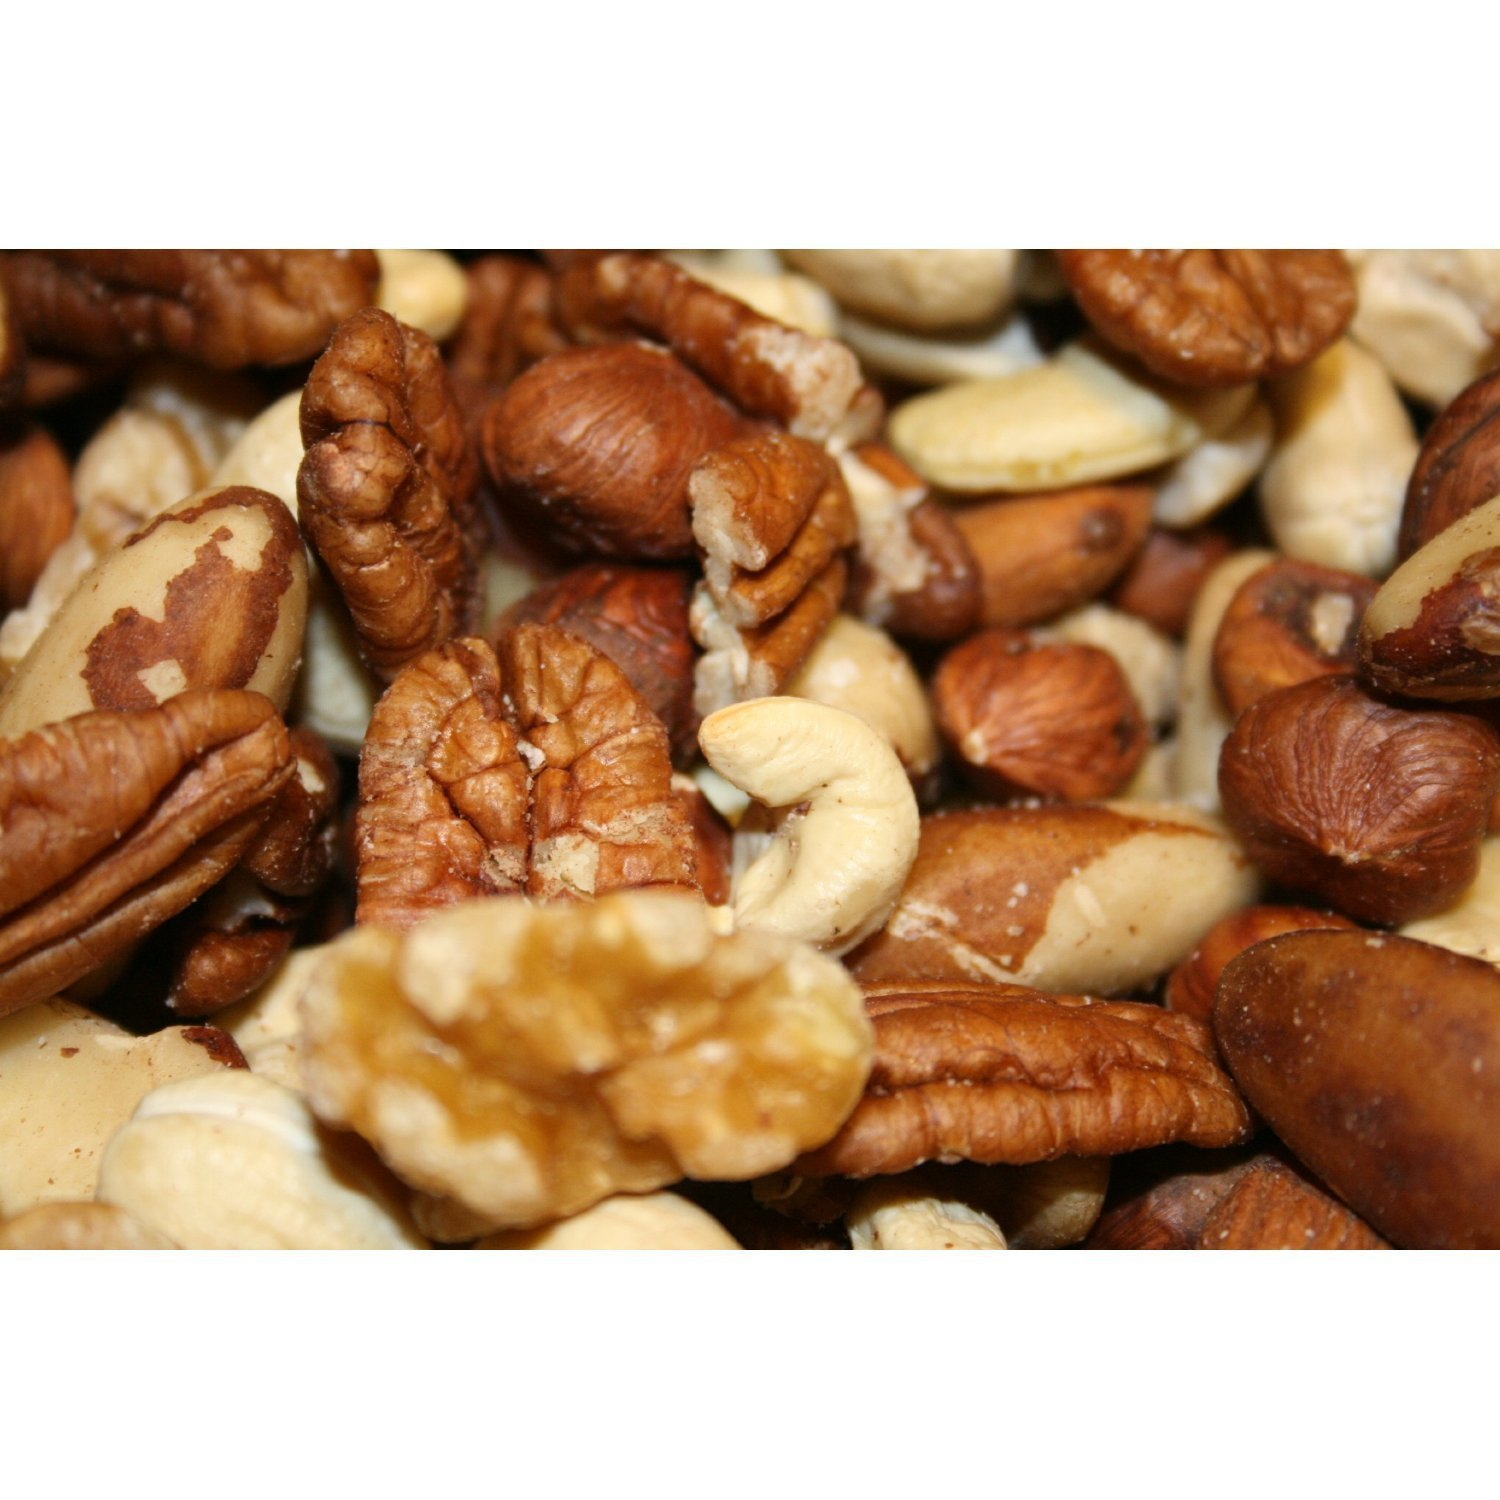 Raw Deluxe Mixed Nuts 3 Lbs, in Resealable Bag, We Got Nuts by We Got Nuts (Image #1)